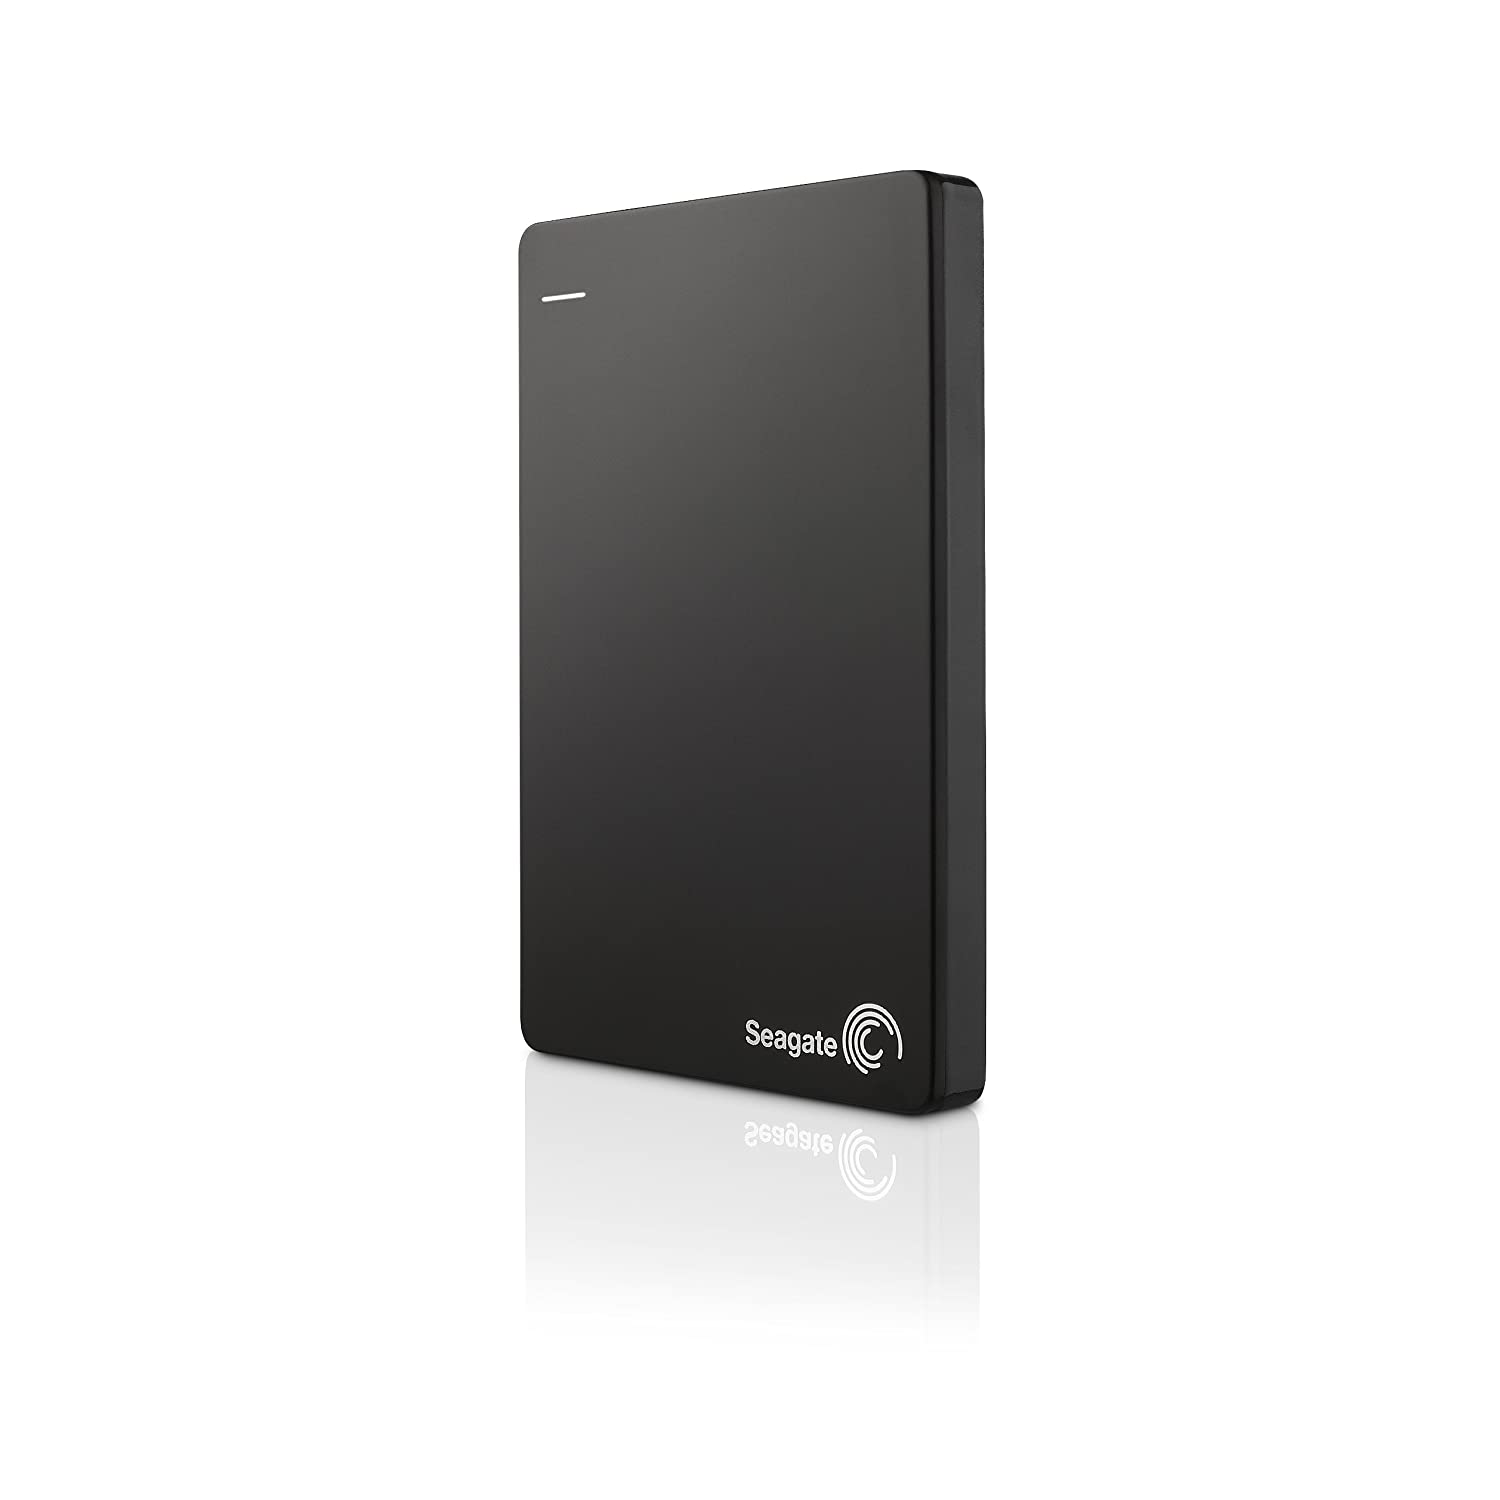 Seagate Backup Plus Slim 2TB Portable External Hard Drive US$99